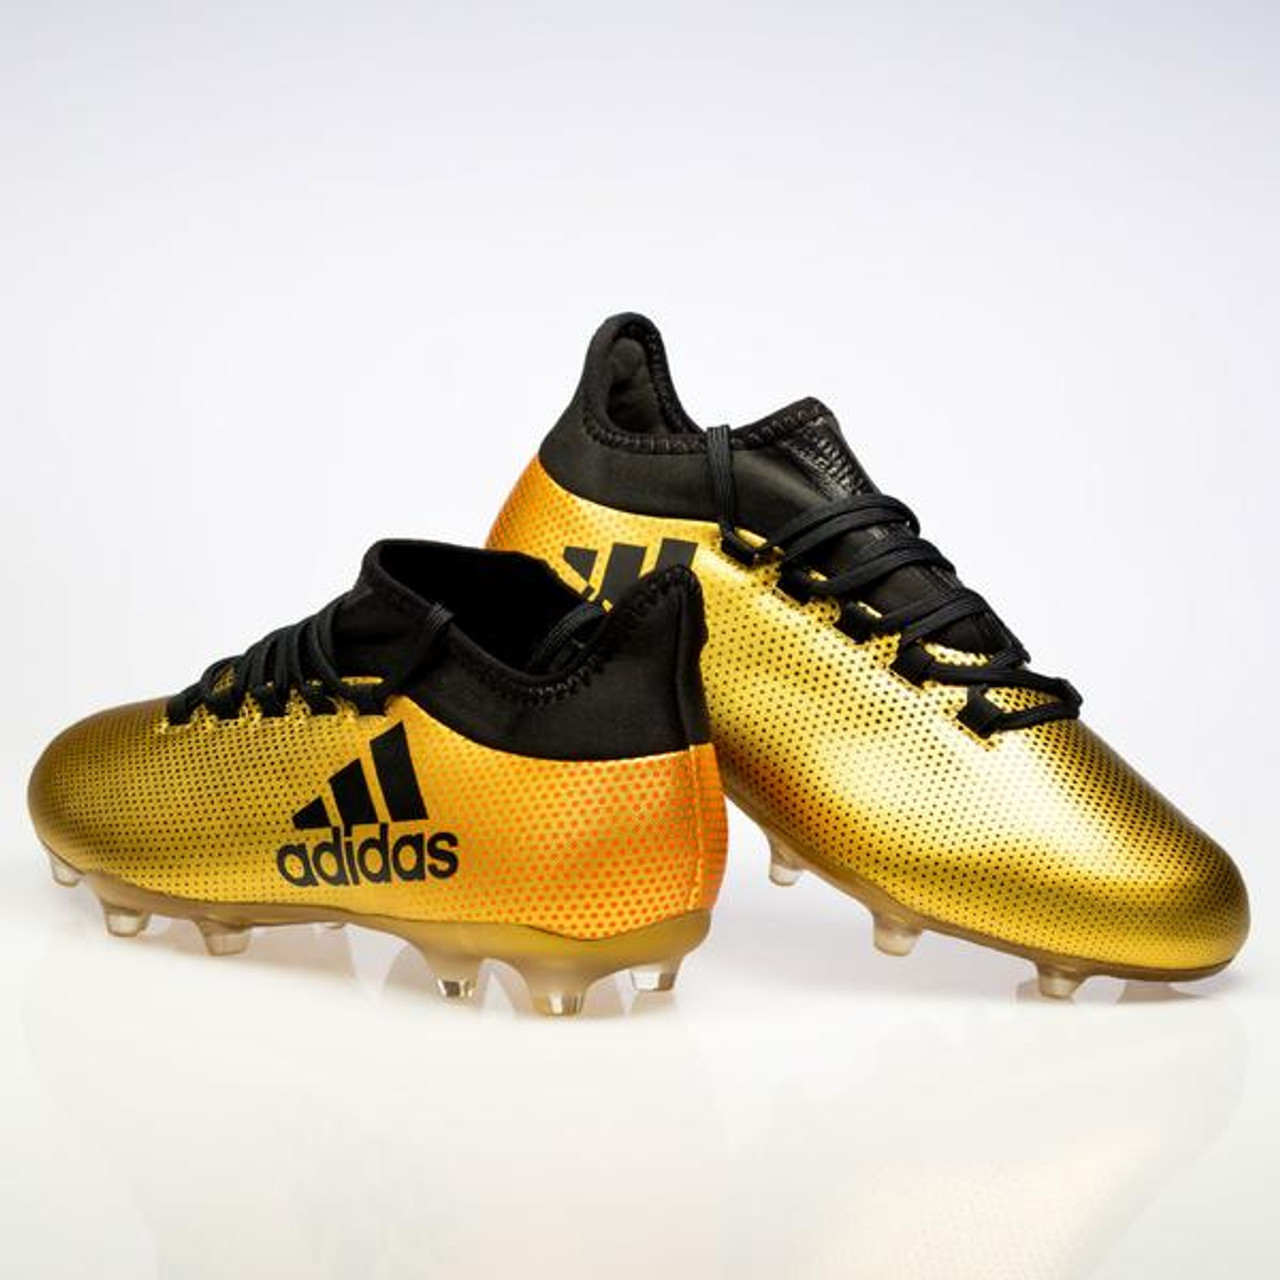 9293086b00a ... Adidas X 17.2 FG Men's Soccer Cleats CP9186 - Gold, Black, ...